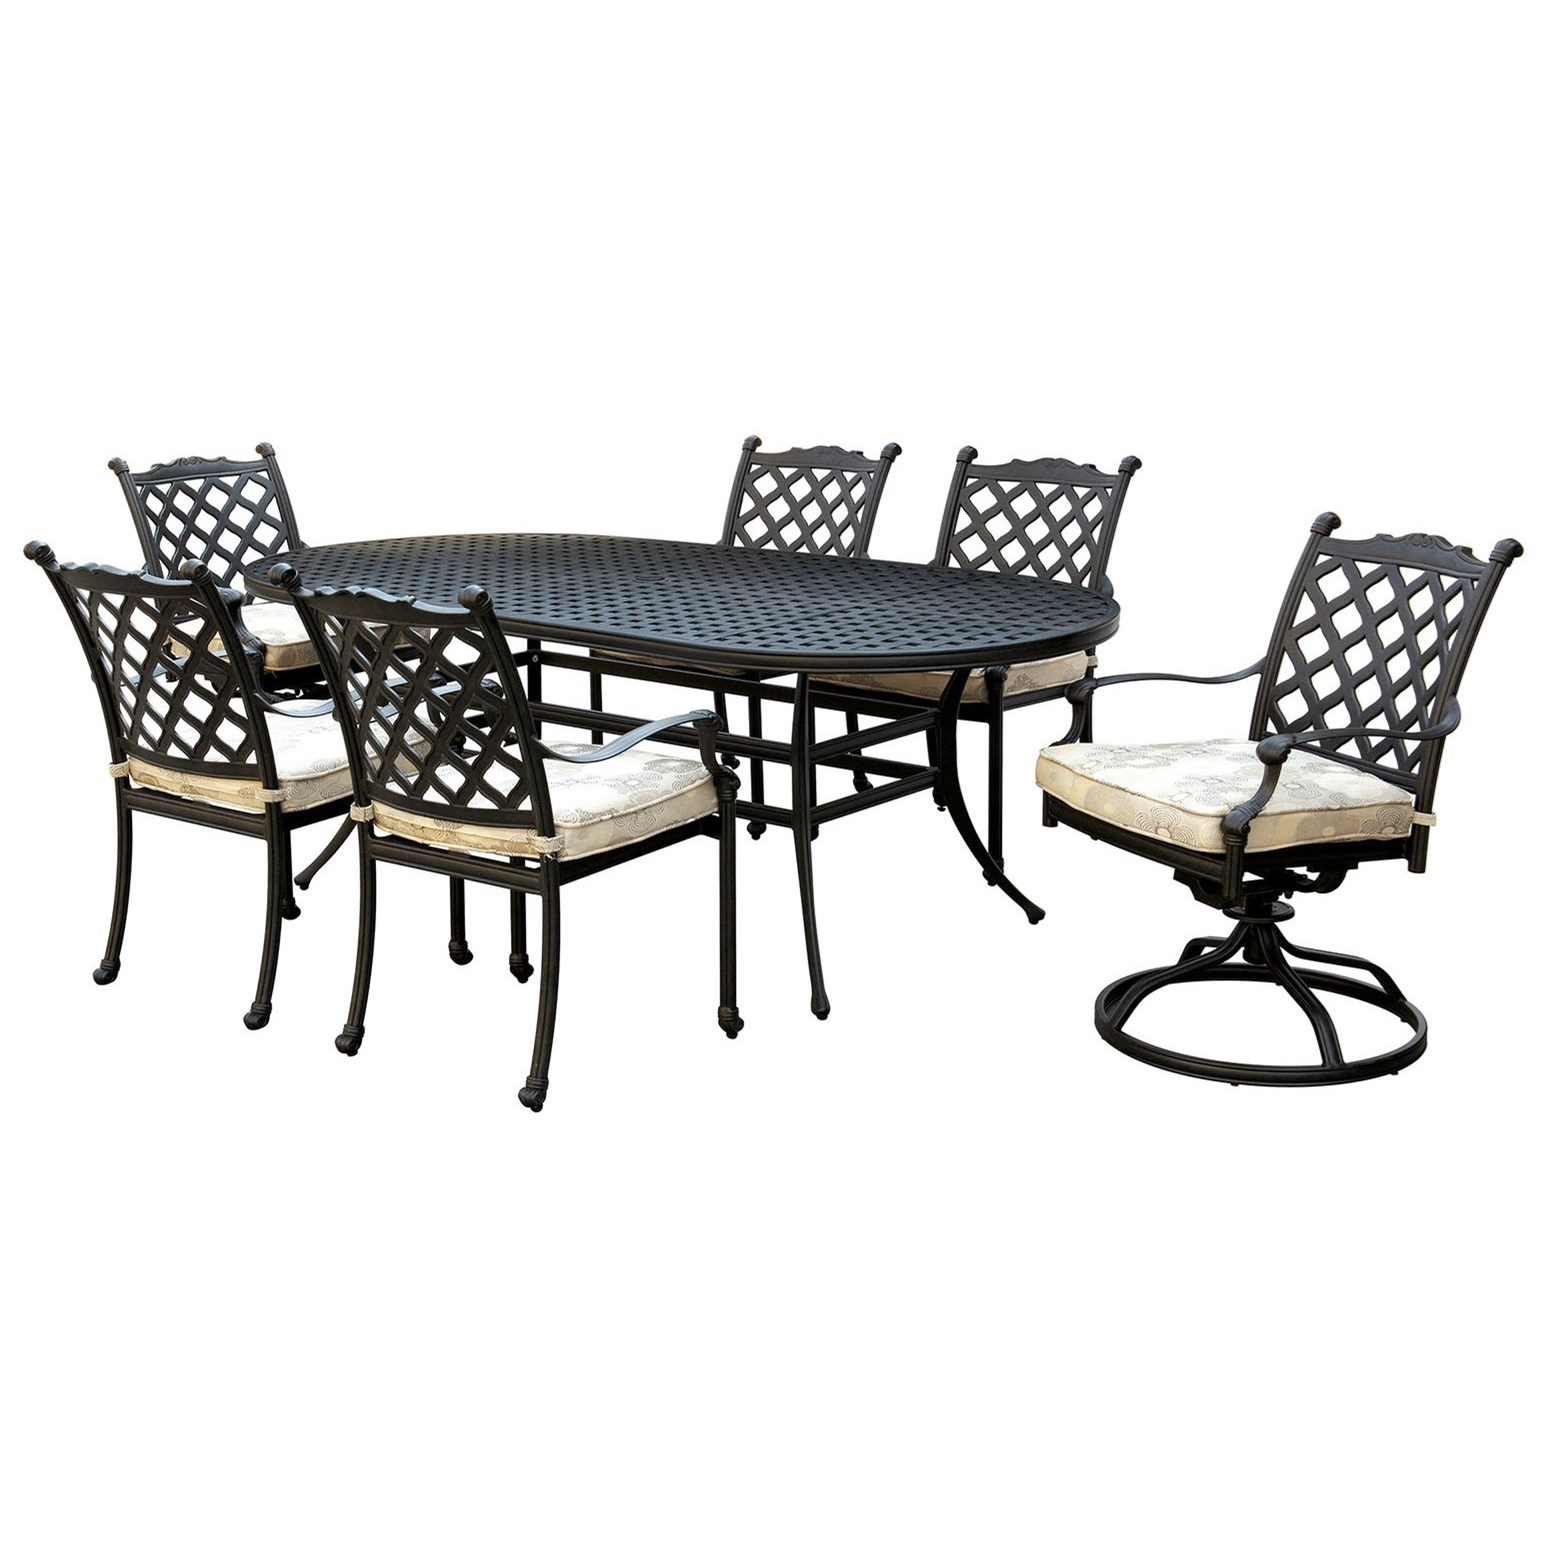 Furniture Of America Foa Chiara I Cm Ot2303 7pc Fabric Traditional Seven Piece Outdoor Dining Set With Cushioned Chairs Del Sol Furniture Outdoor Conversation Sets Outdoor Chat Sets